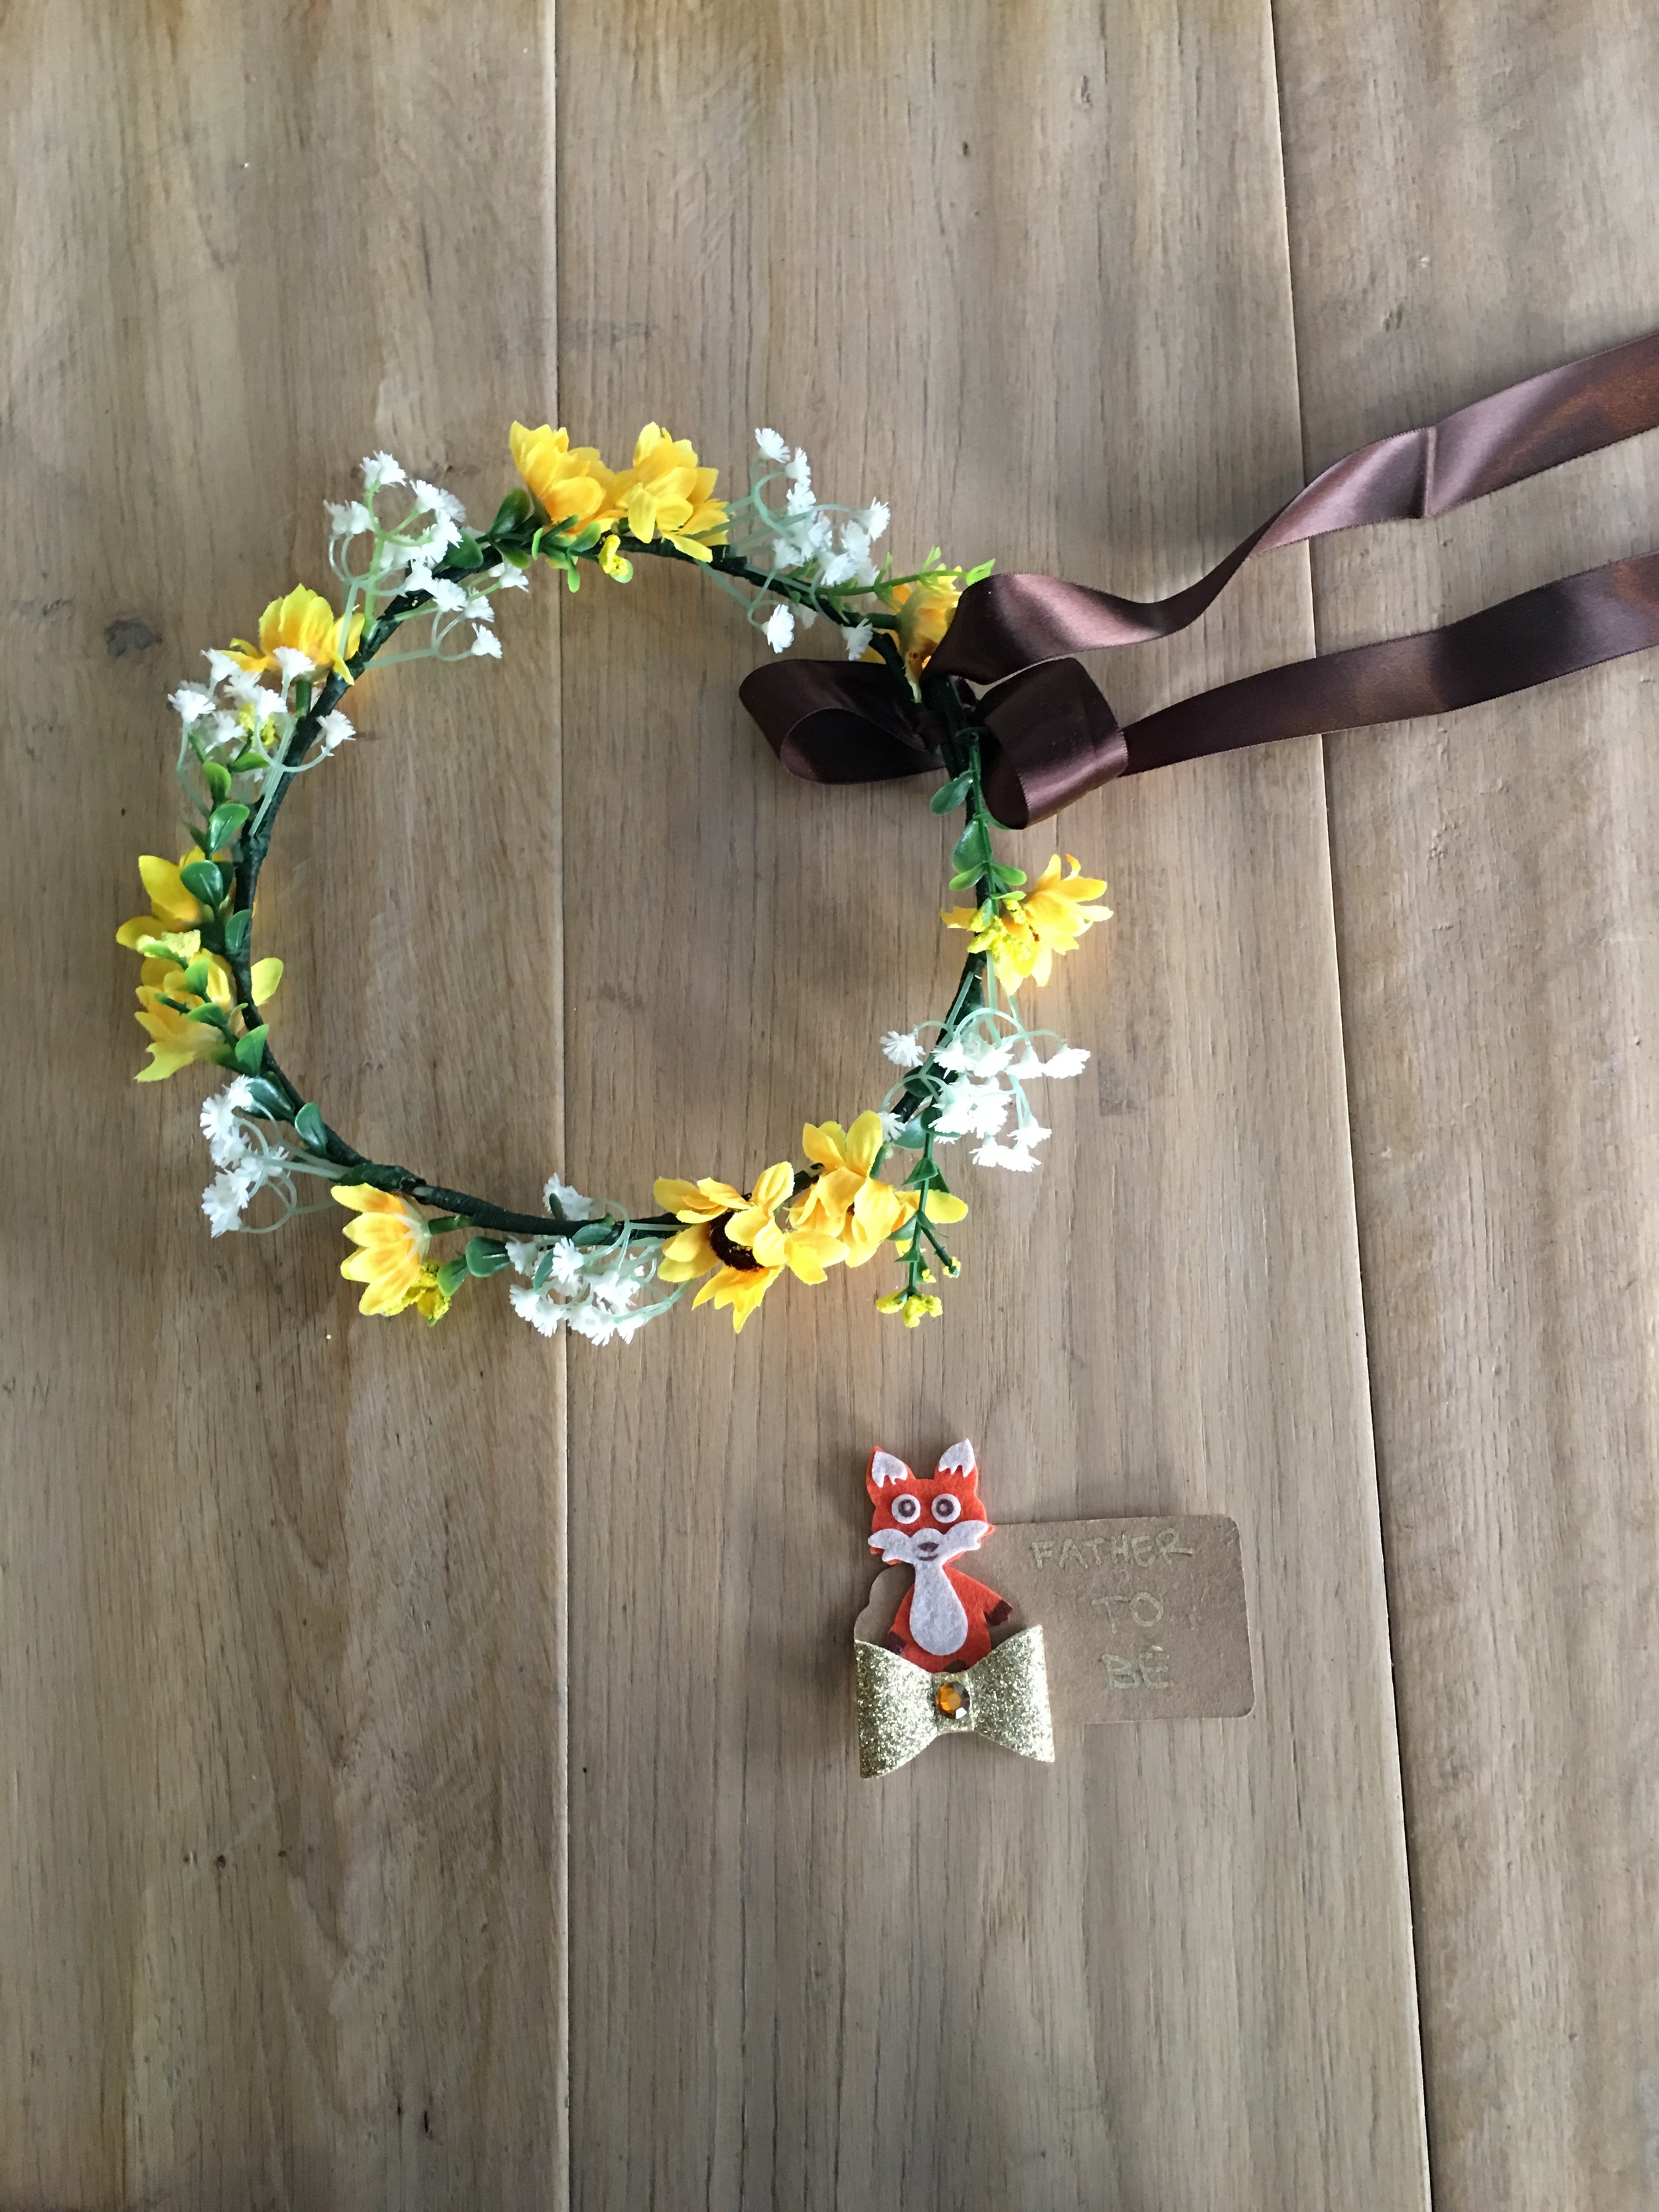 """a floral crown for the mom-to-be. (she loves sunflowers so it went perfectly.) added the long satin brown ribbon for a bit of drama.  Also made a """"Father-to-be"""" pin from a felt sticker, brown paper tag, gold pen, and a bow. Added double sided tape to the back so it can adhere."""